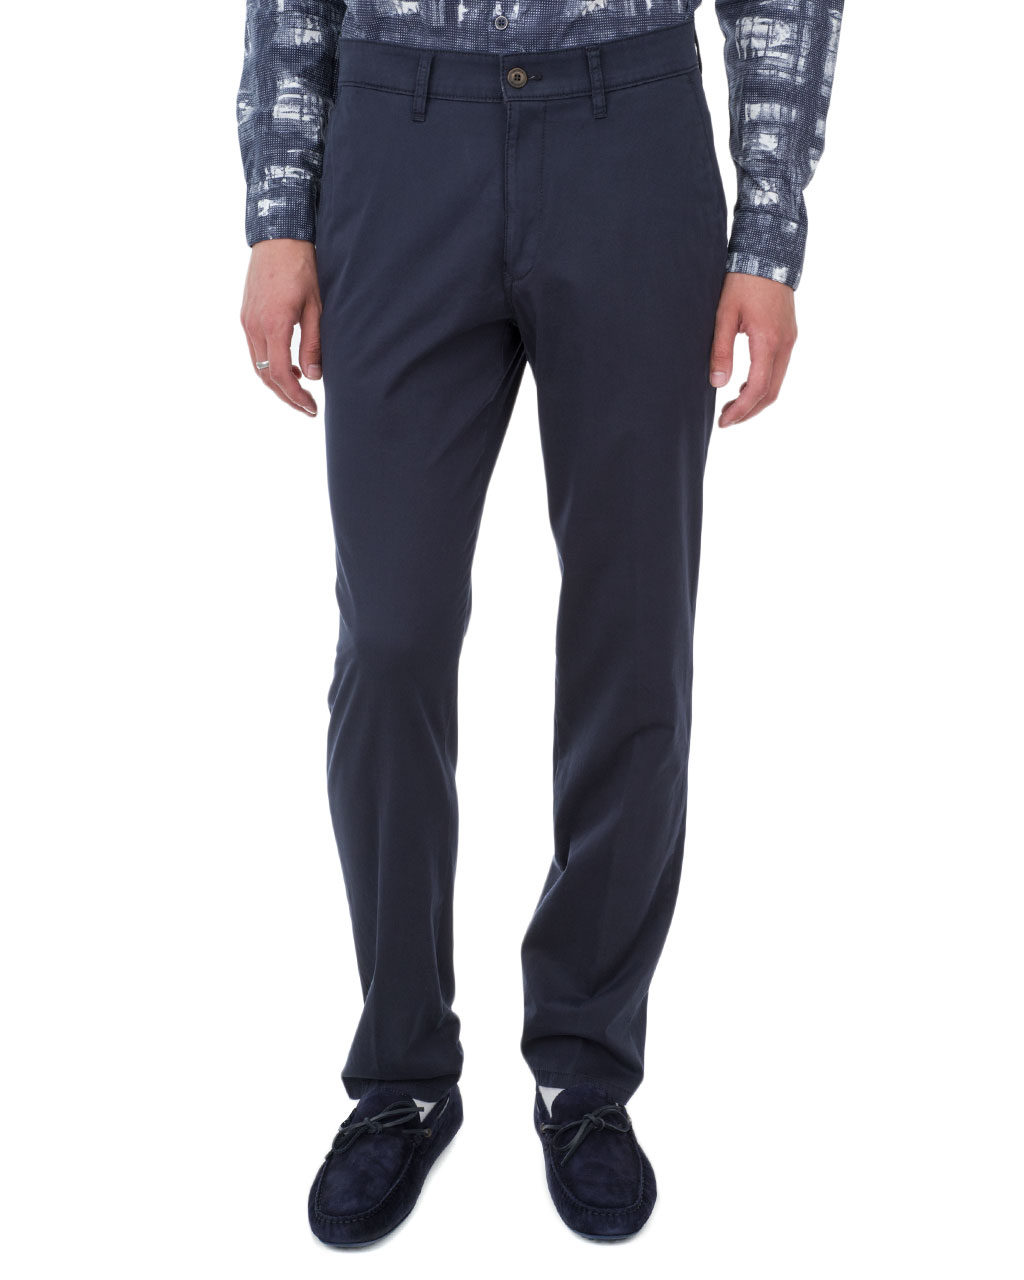 Men's trousers BENNY-8-410941-68/92 (1)